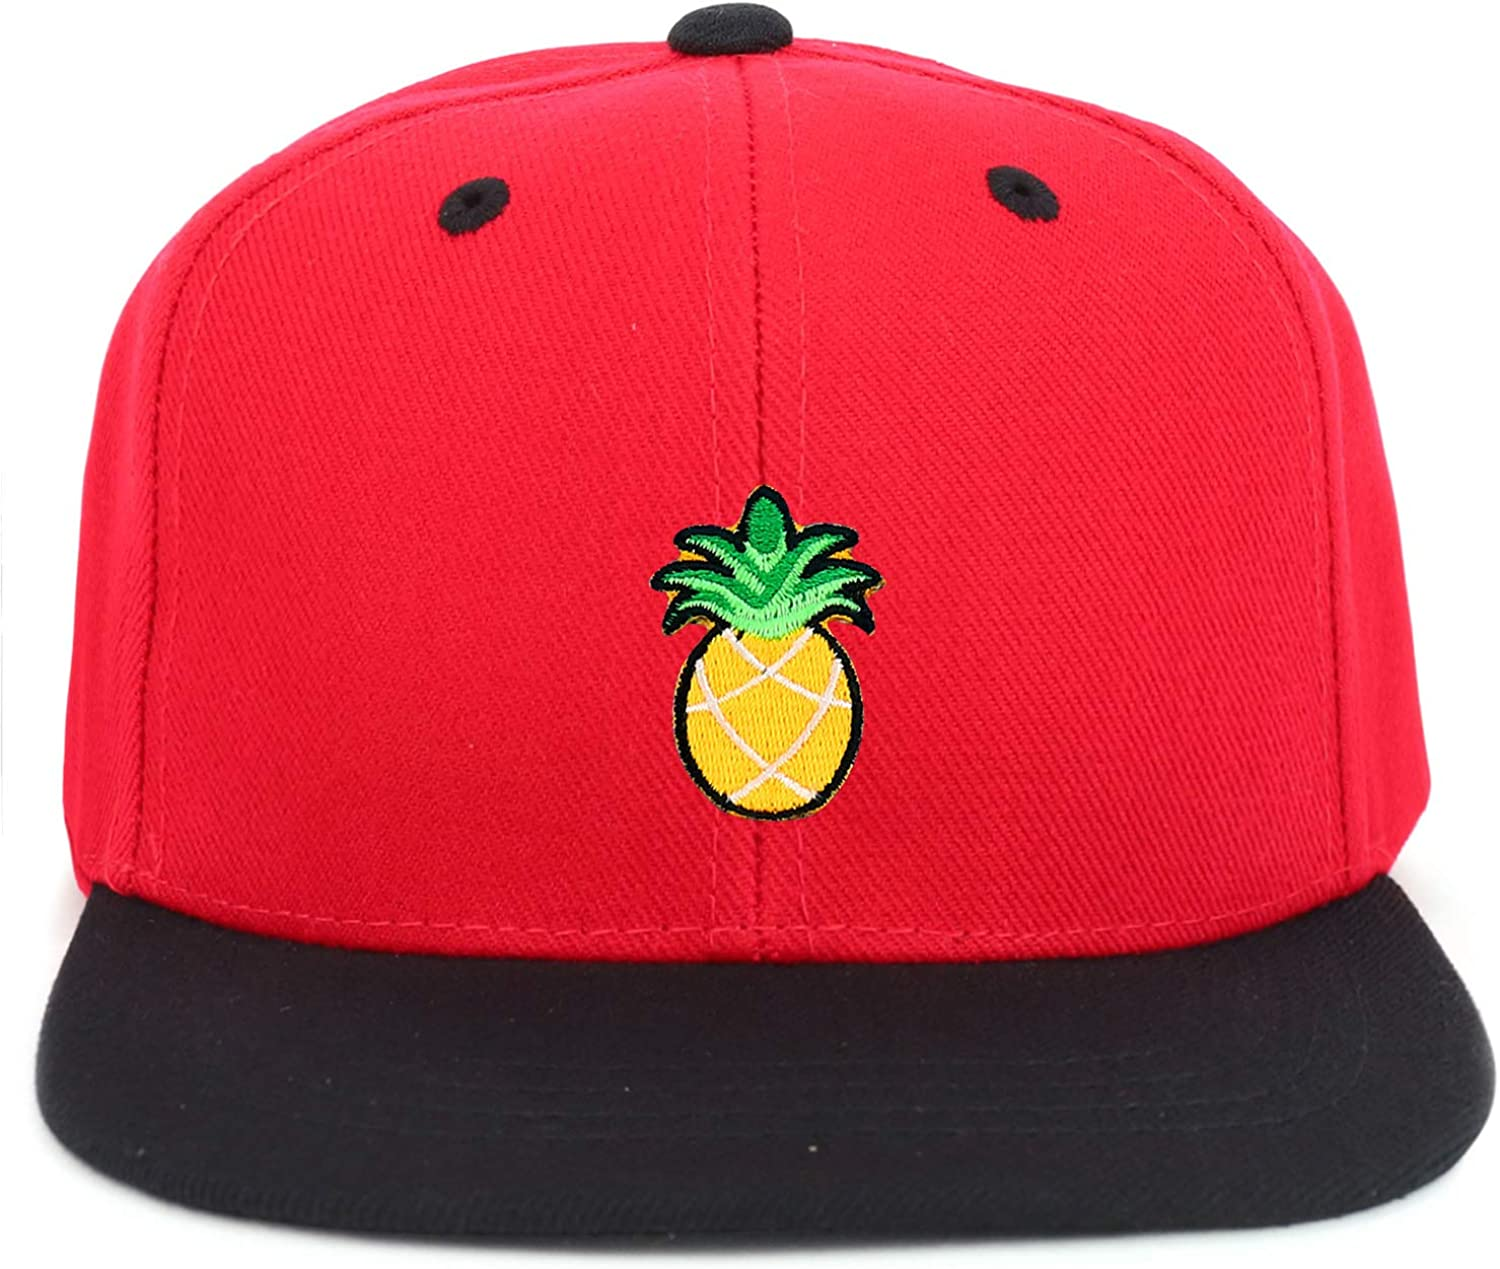 Armycrew Youth Kids Pineapple Patch Flat Bill Snapback 2-Tone Baseball Cap